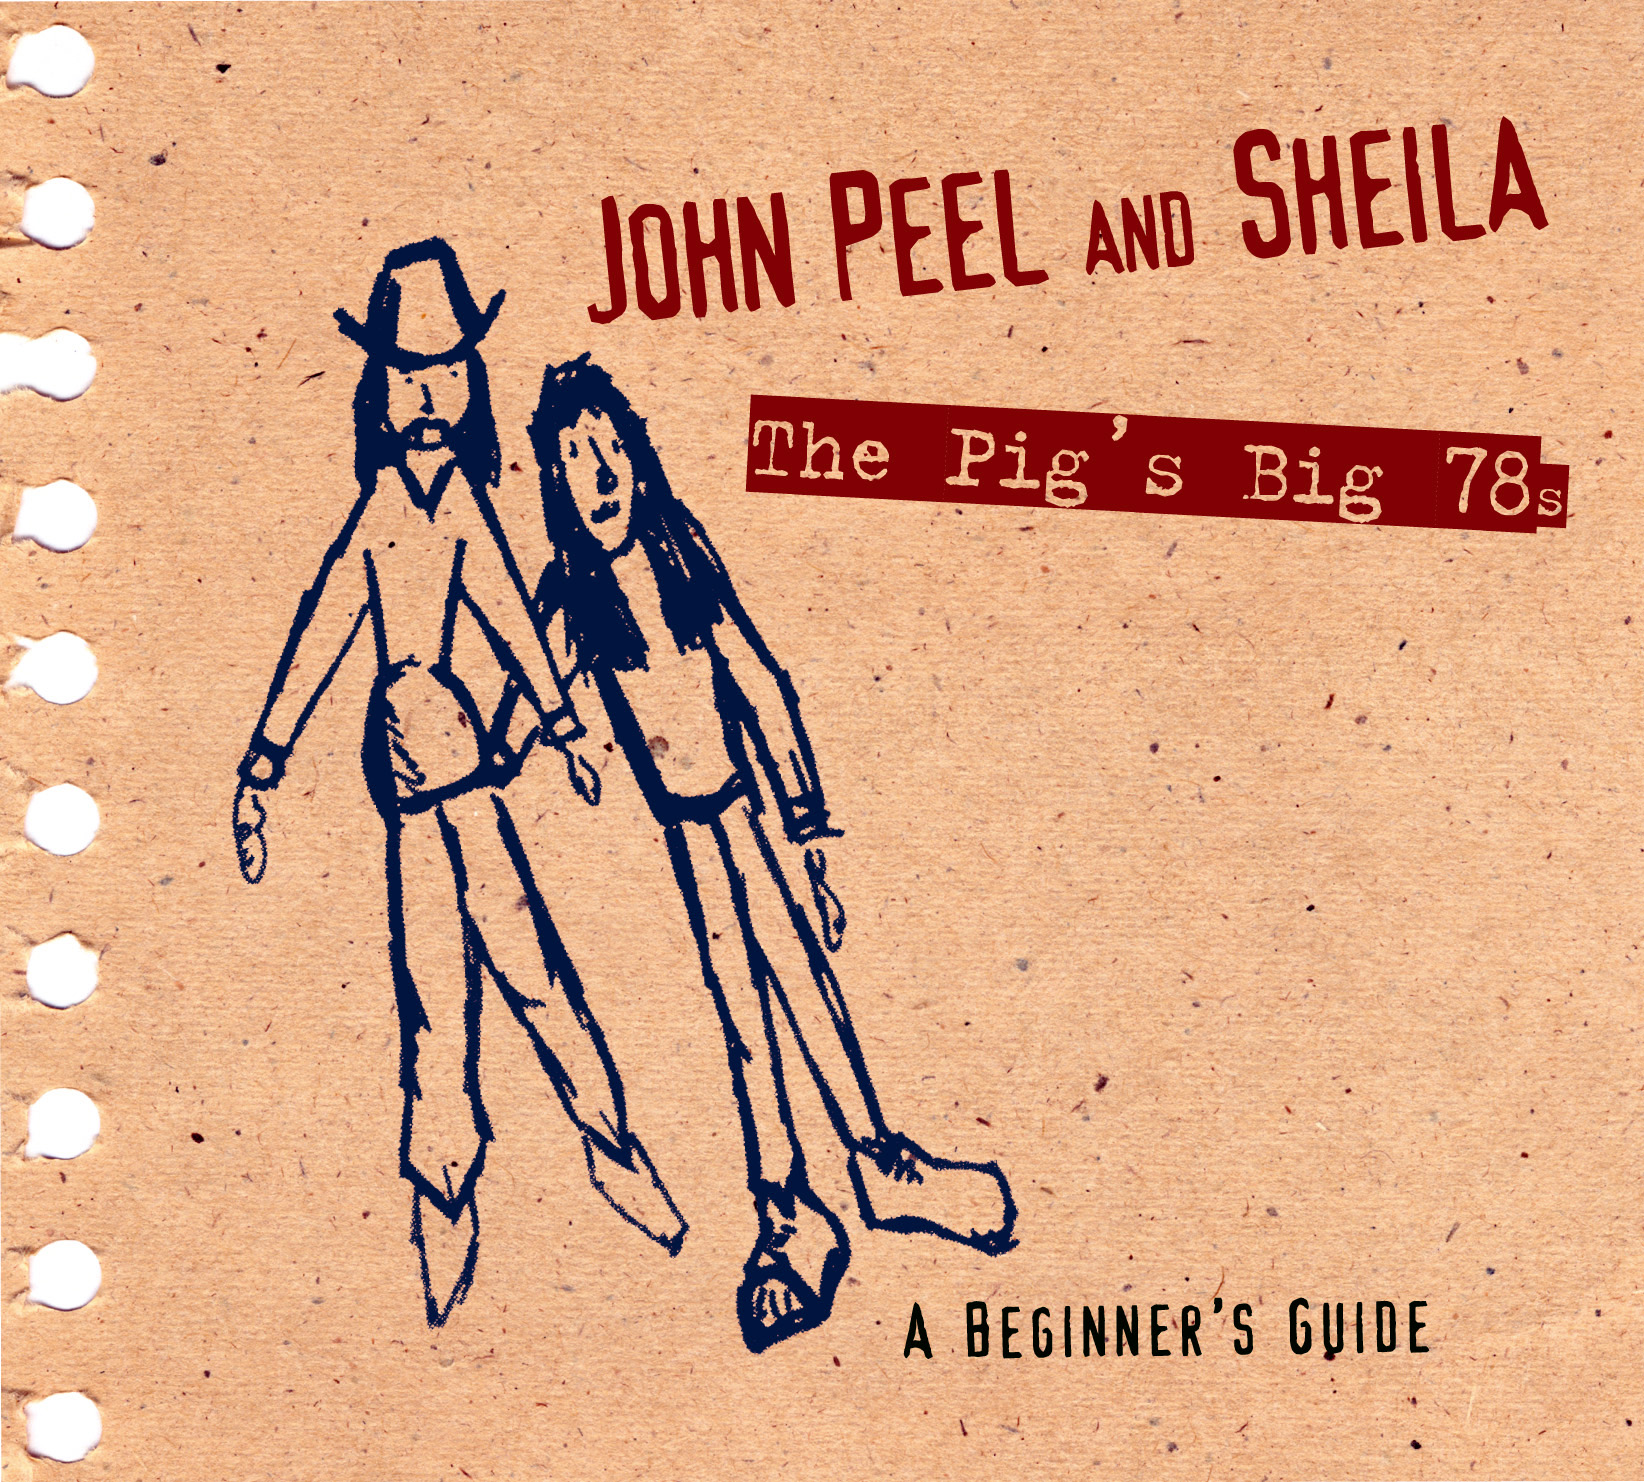 John Peel and Sheila - The Pig's Big 78's - A Beginner's Guide 1